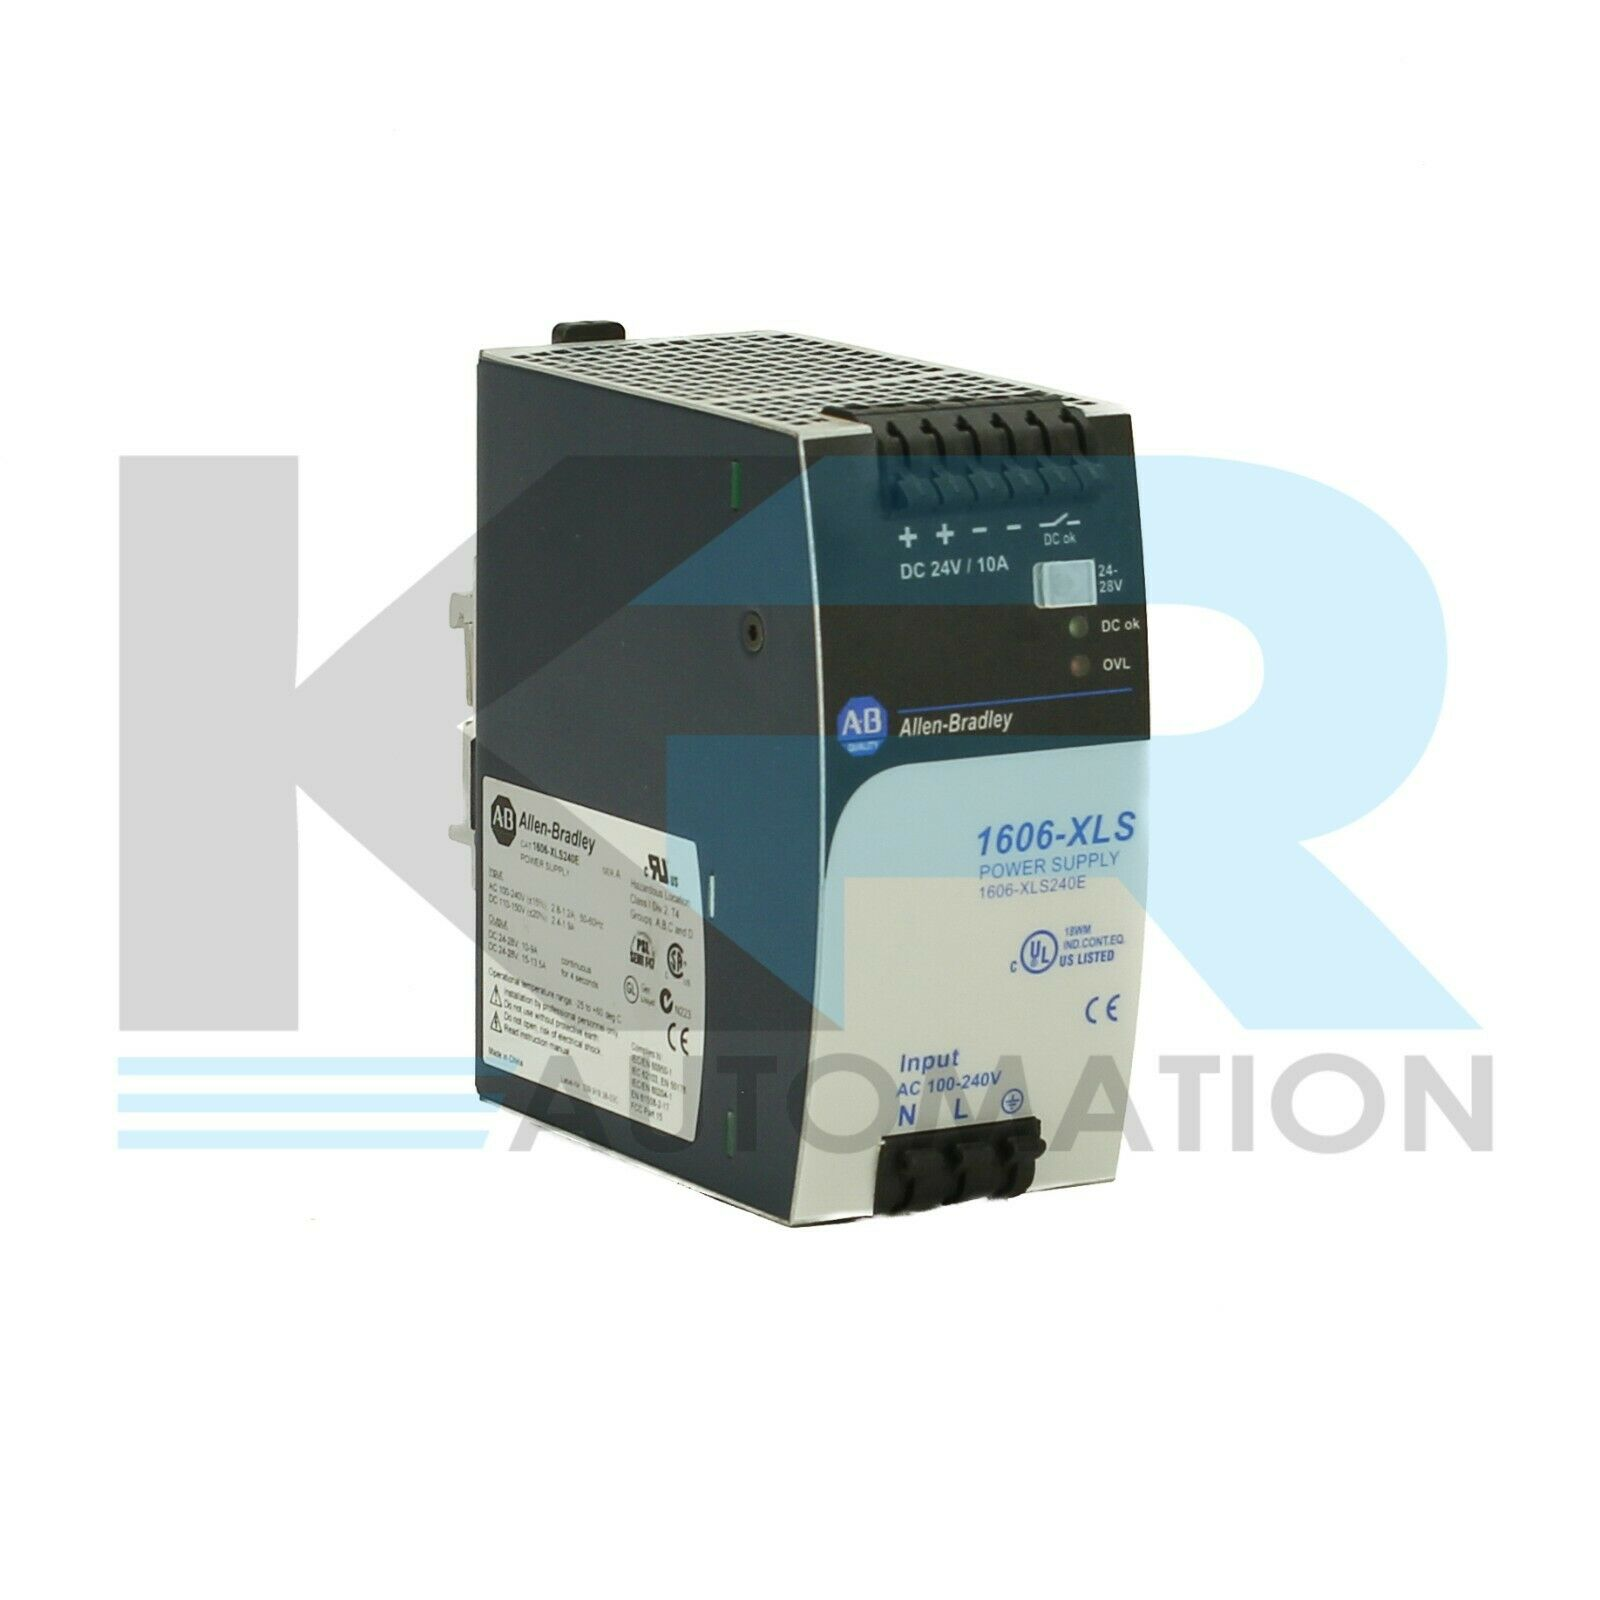 Allen Bradley 1606-XLS240E /A Power Supply 100-240VAC 110-150VDC